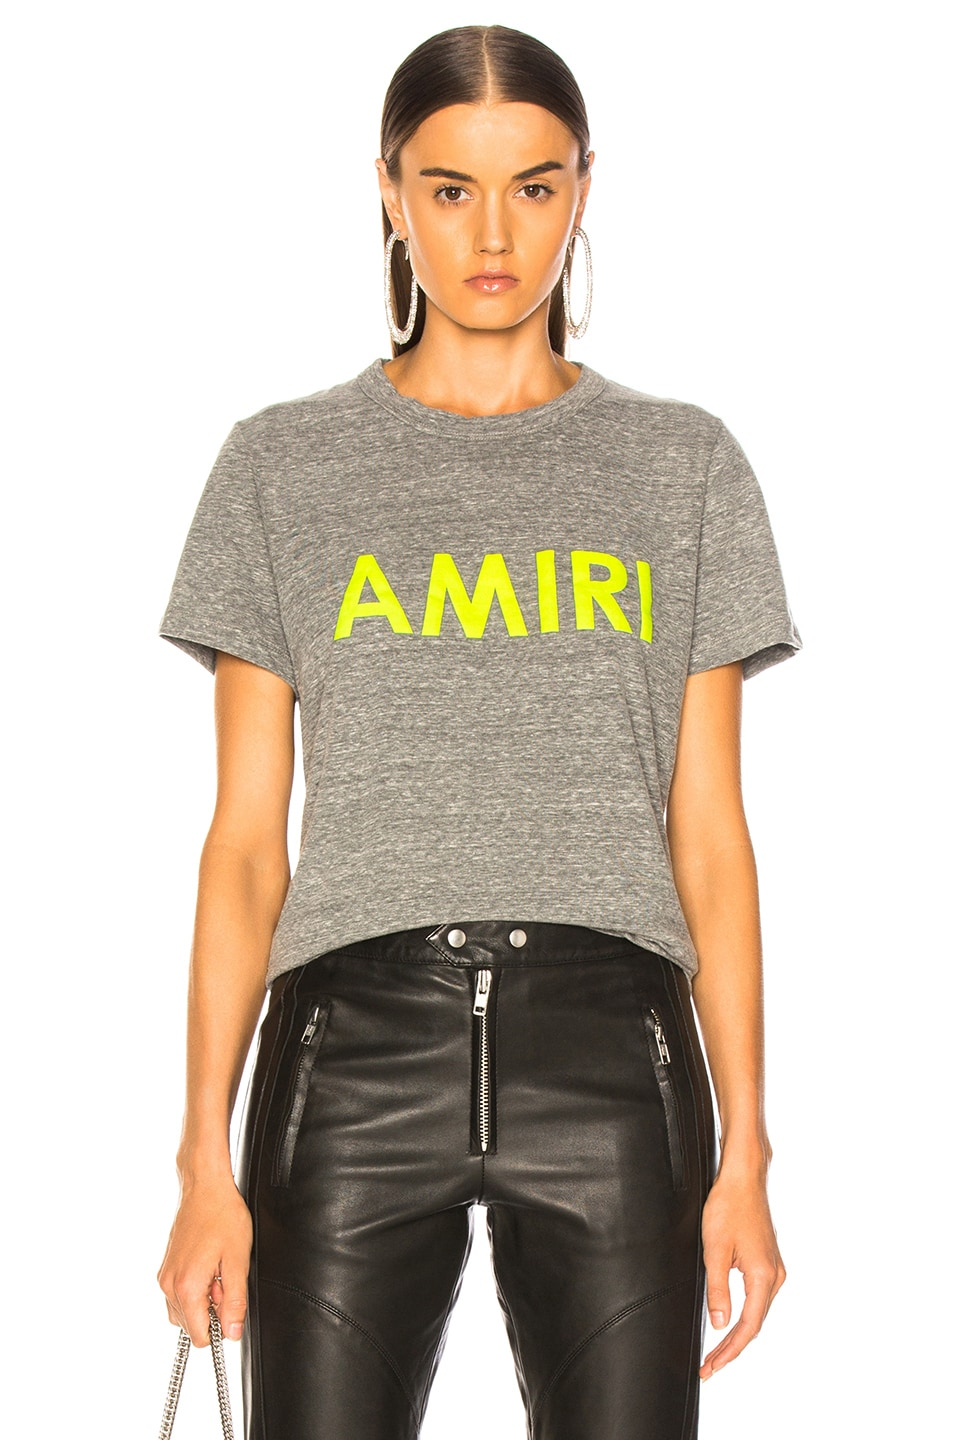 Image 1 of Amiri Tee in Heather Grey & Neon Yellow